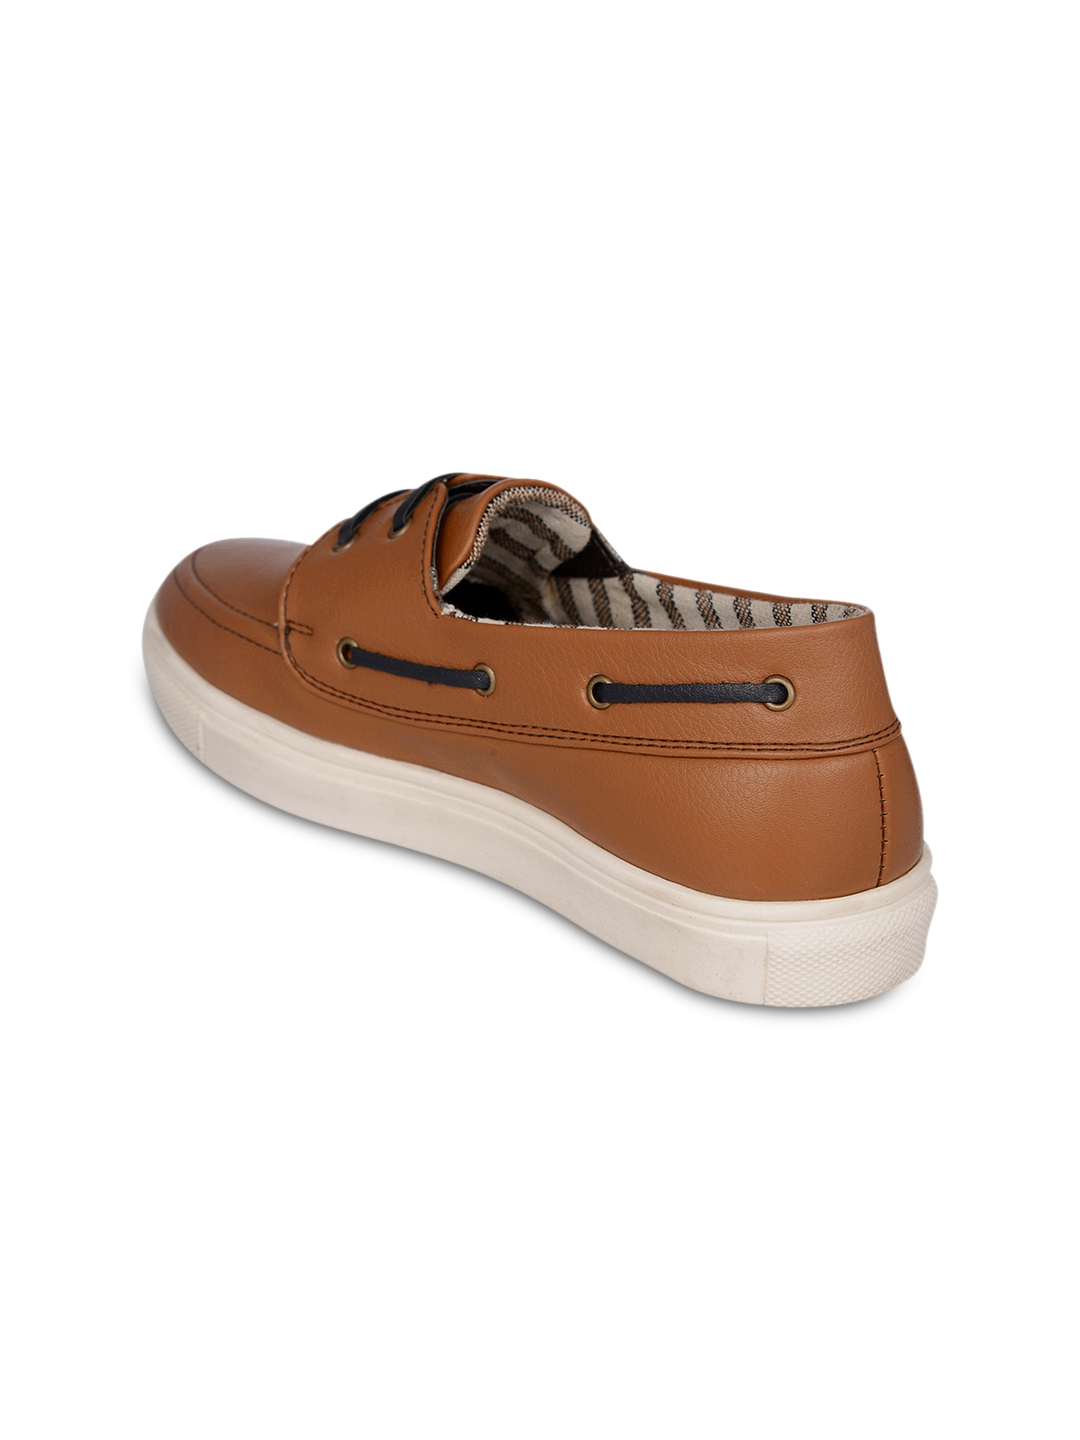 056a45230 Buy Bruno Manetti Women Tan Brown Solid Boat Shoes - Casual Shoes ...